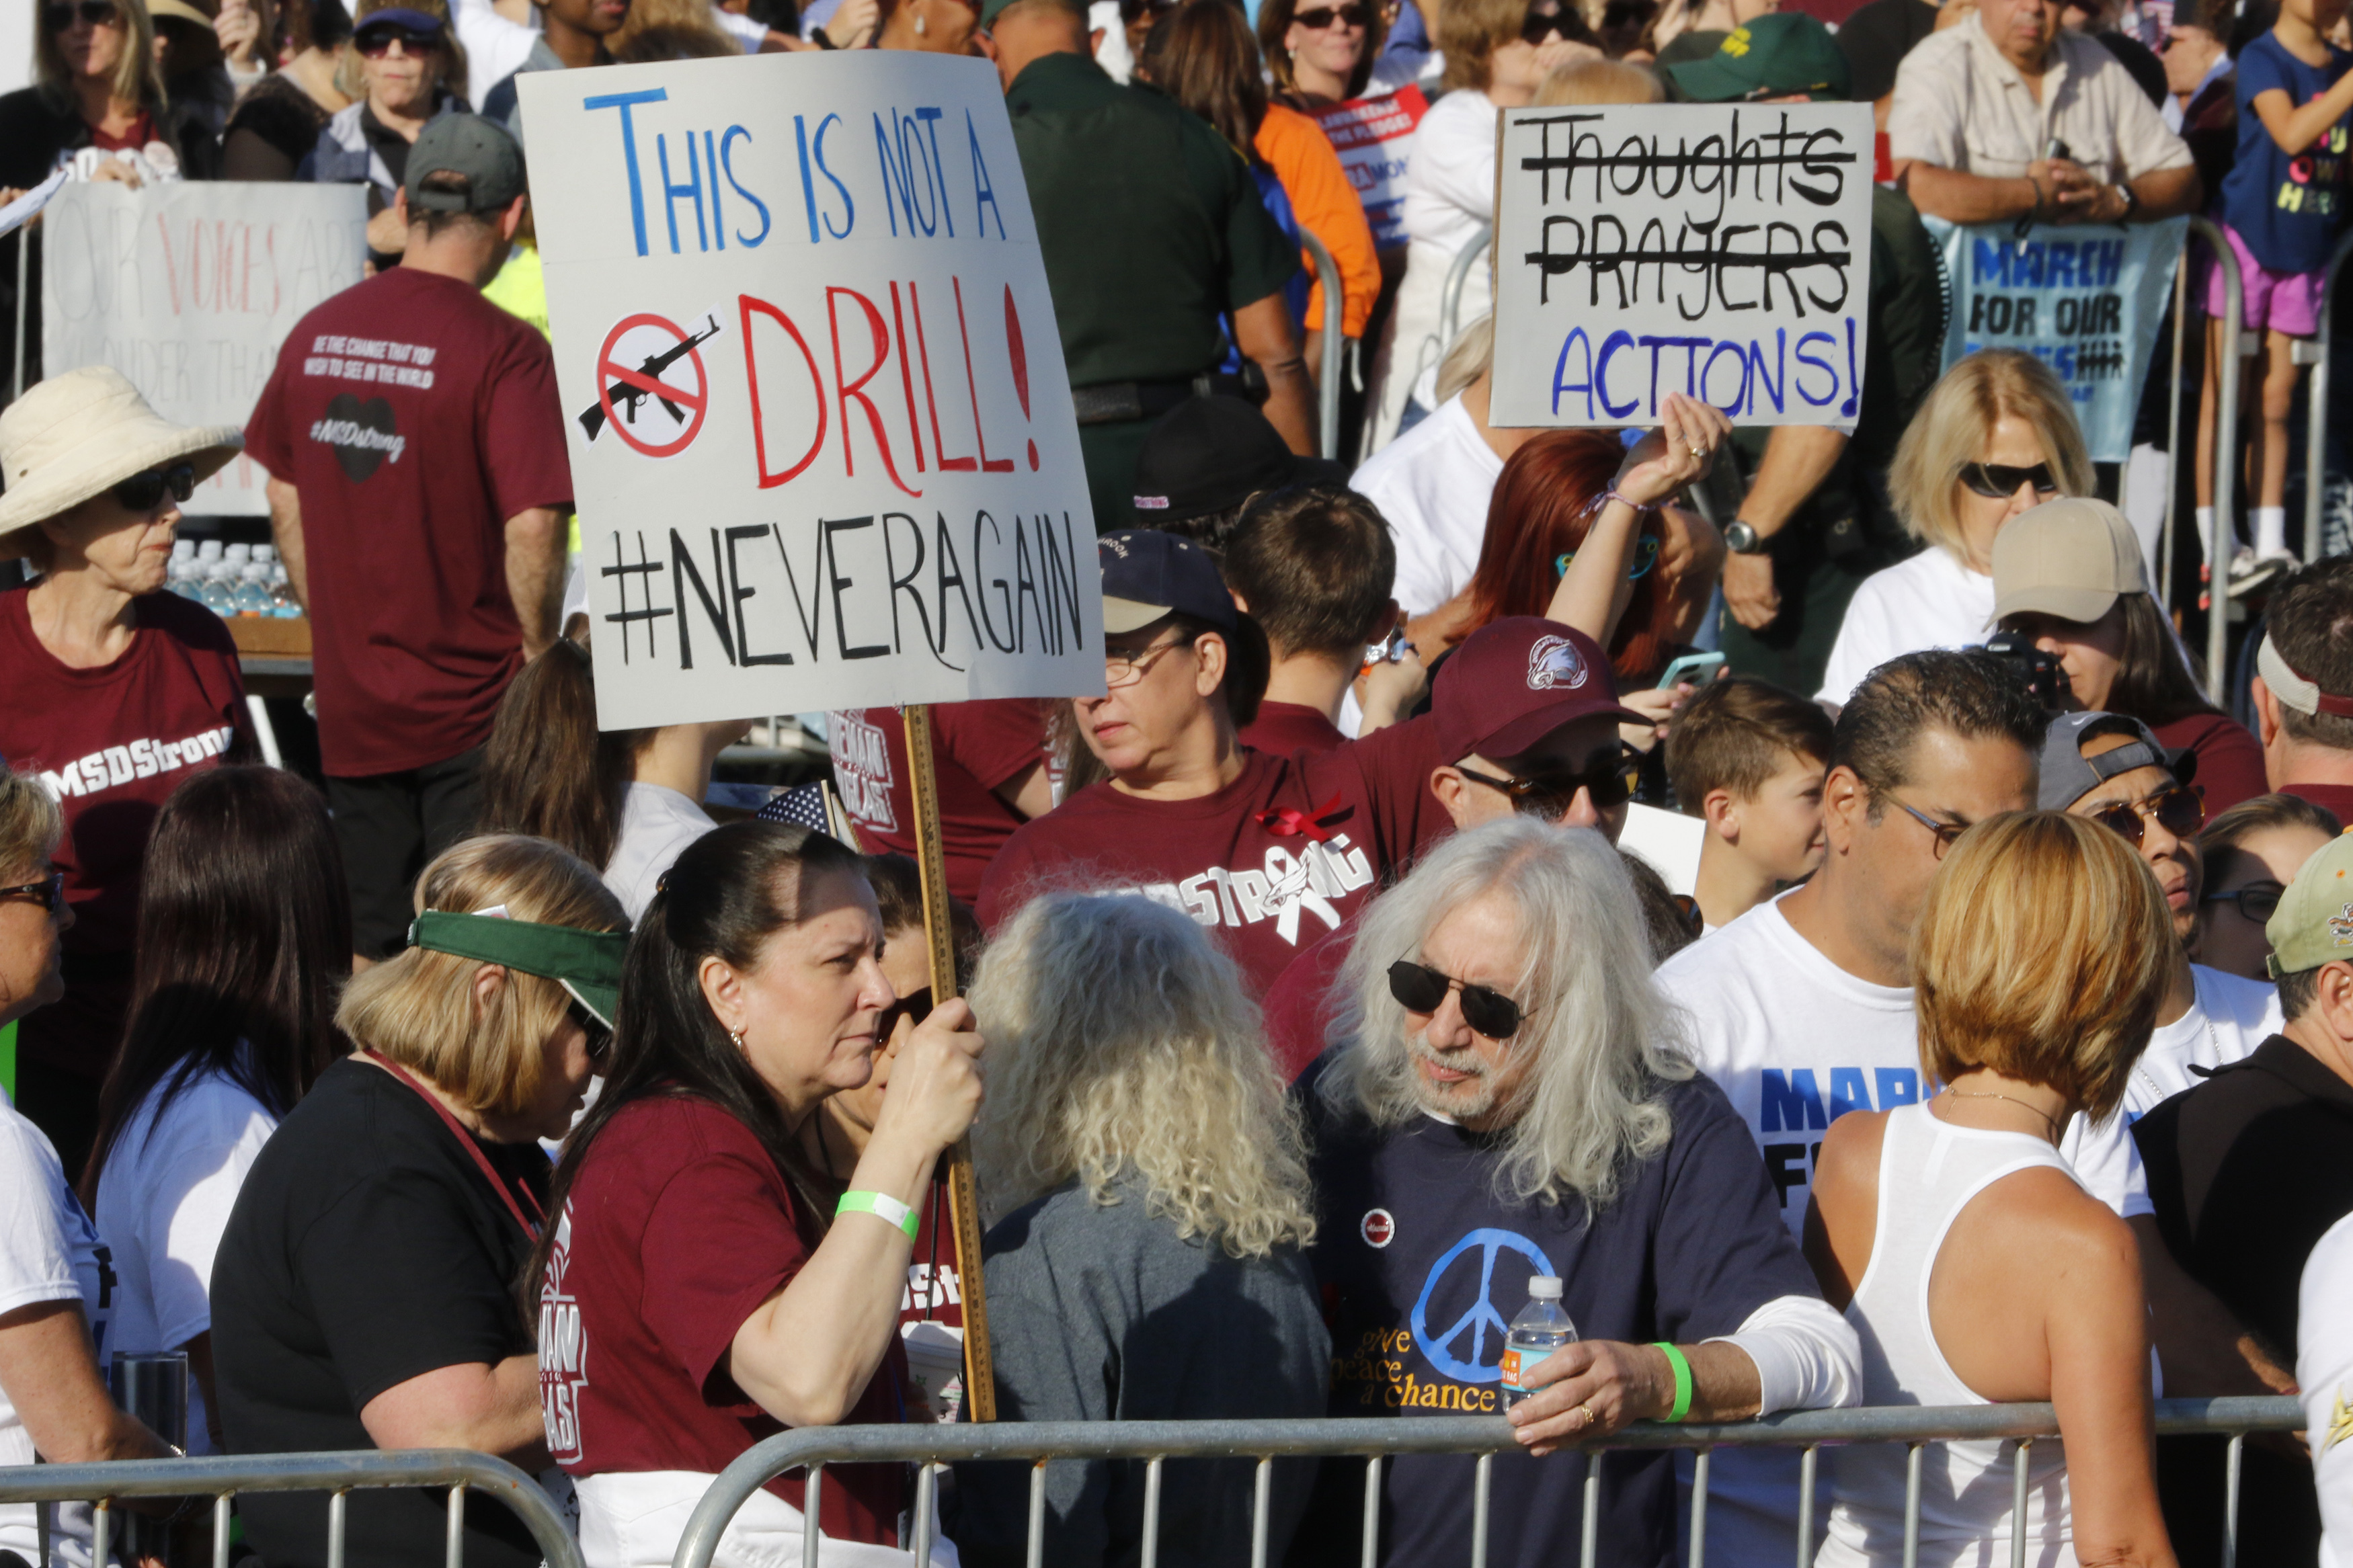 "<div class=""meta image-caption""><div class=""origin-logo origin-image ap""><span>AP</span></div><span class=""caption-text"">Participants gather during the March For Our Lives event, Saturday, March 24, 2018, in Parkland, Fla. (AP Photo/Joe Skipper)</span></div>"